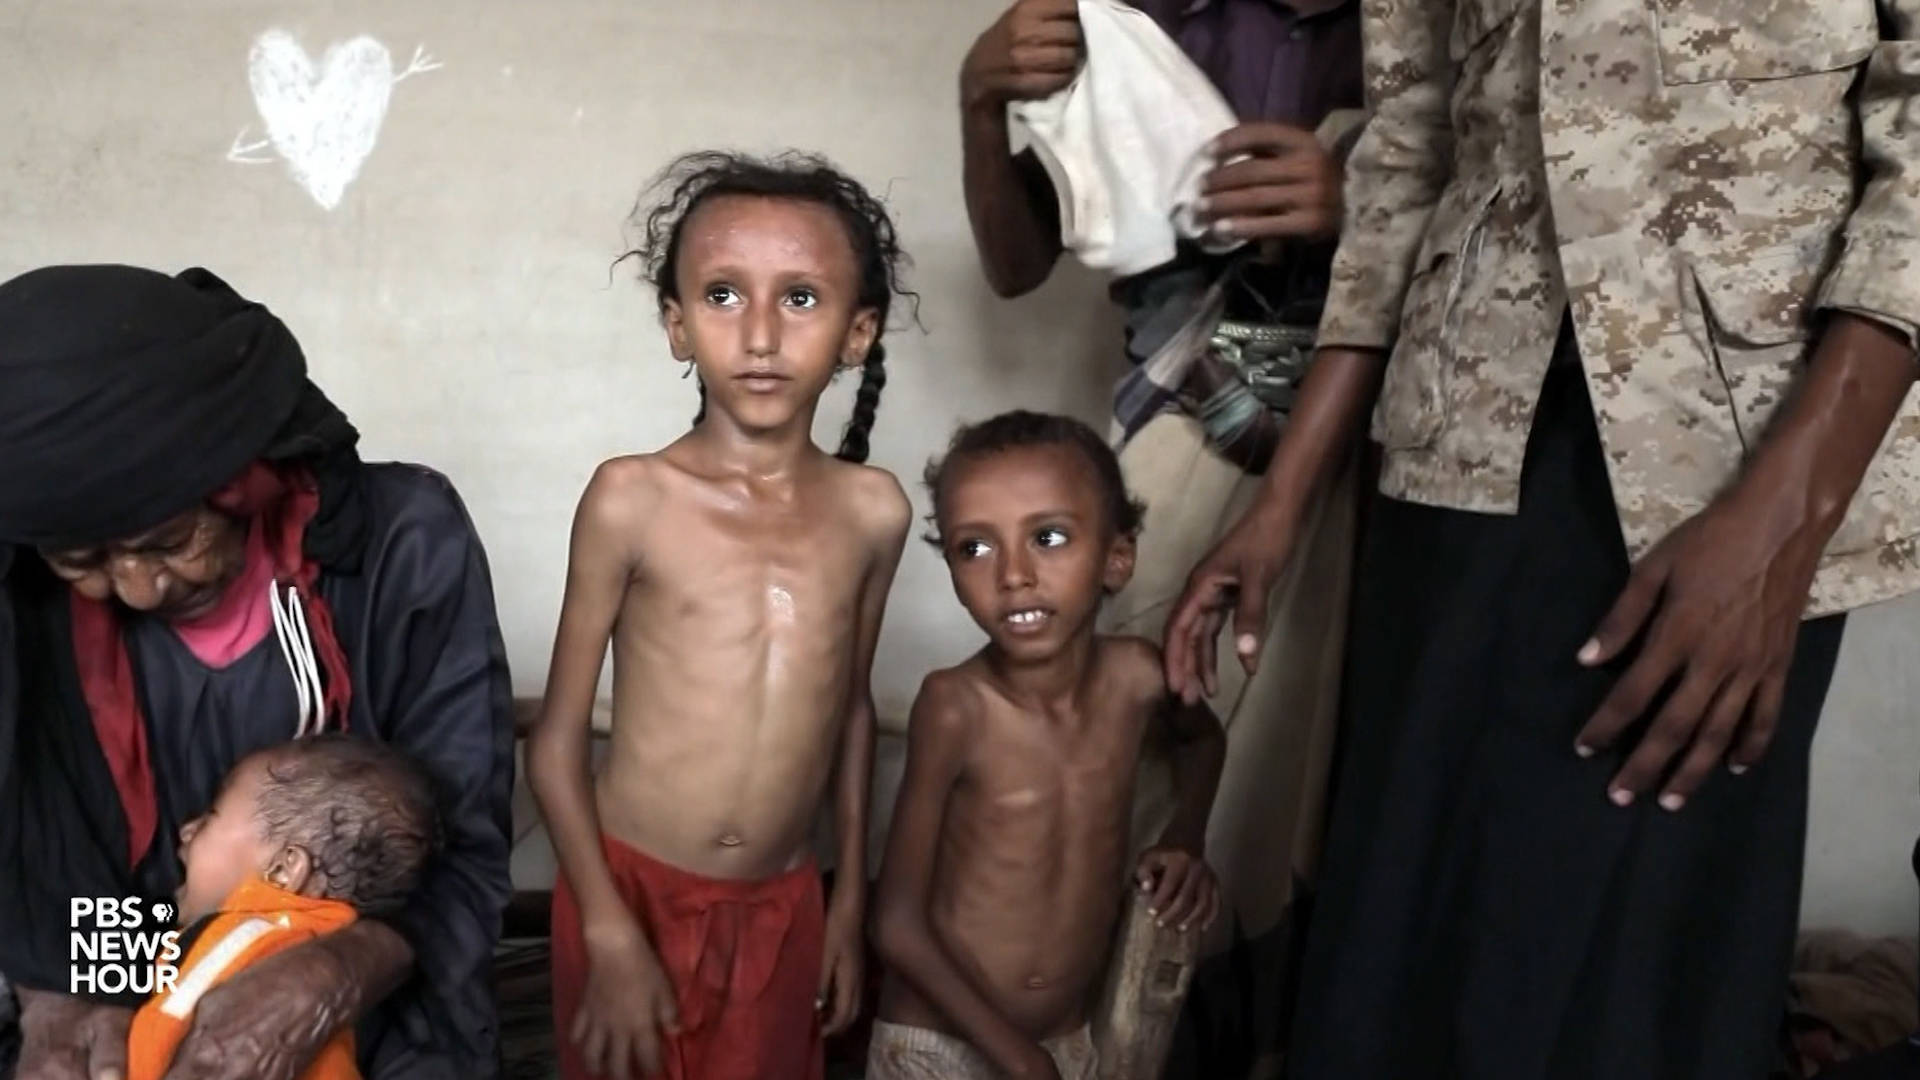 democracynow.org - PBS Report from Yemen: As Millions Face Starvation, American-Made Bombs Are Killing Civilians